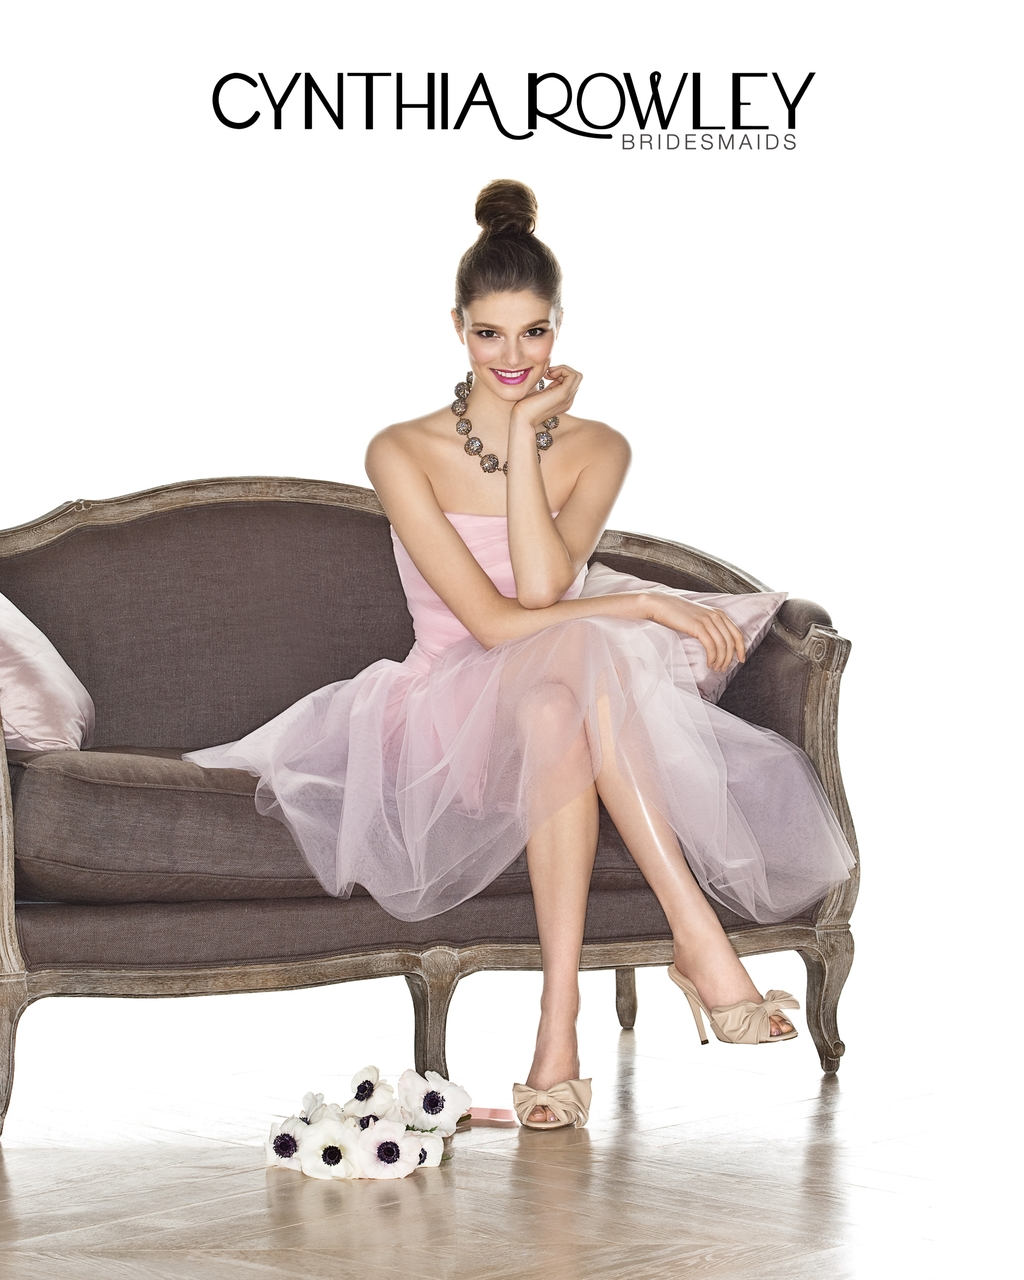 Cynthia-rowley-bridesmaids-dress-designs-for-the-dessy-group.full